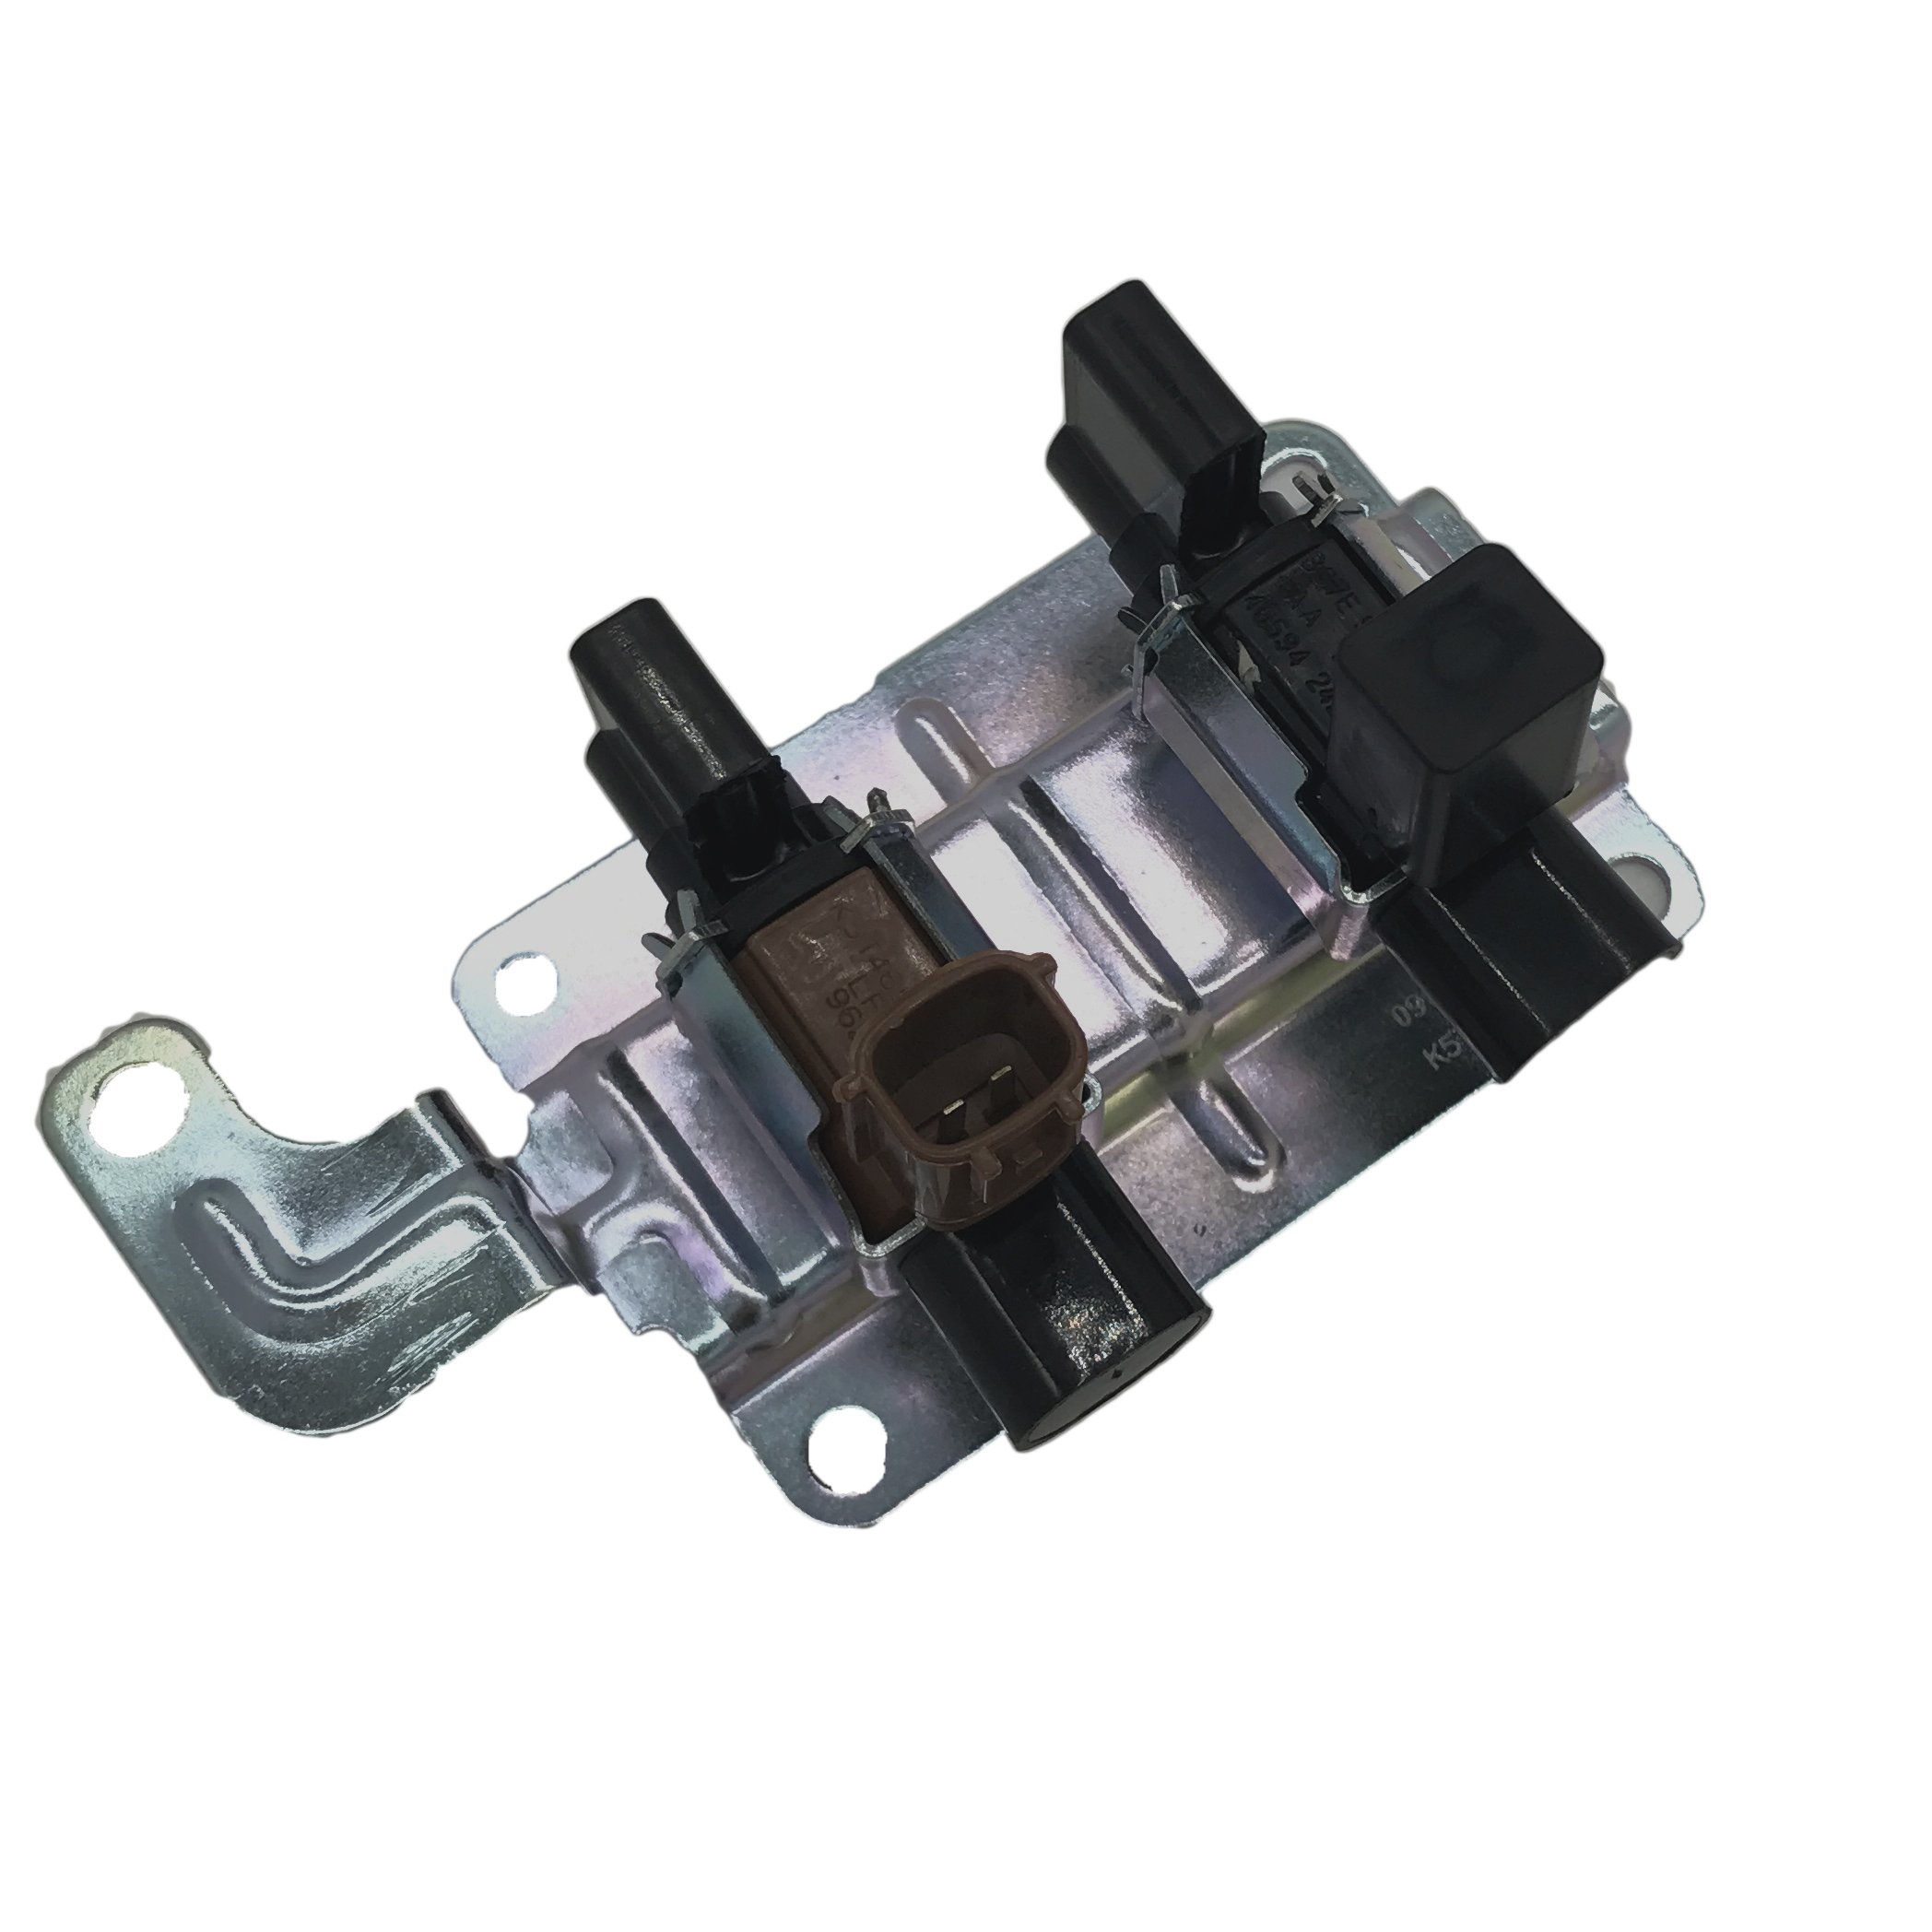 dcaed7b89d7e Cheap Mazda Transmission Solenoid, find Mazda Transmission Solenoid ...